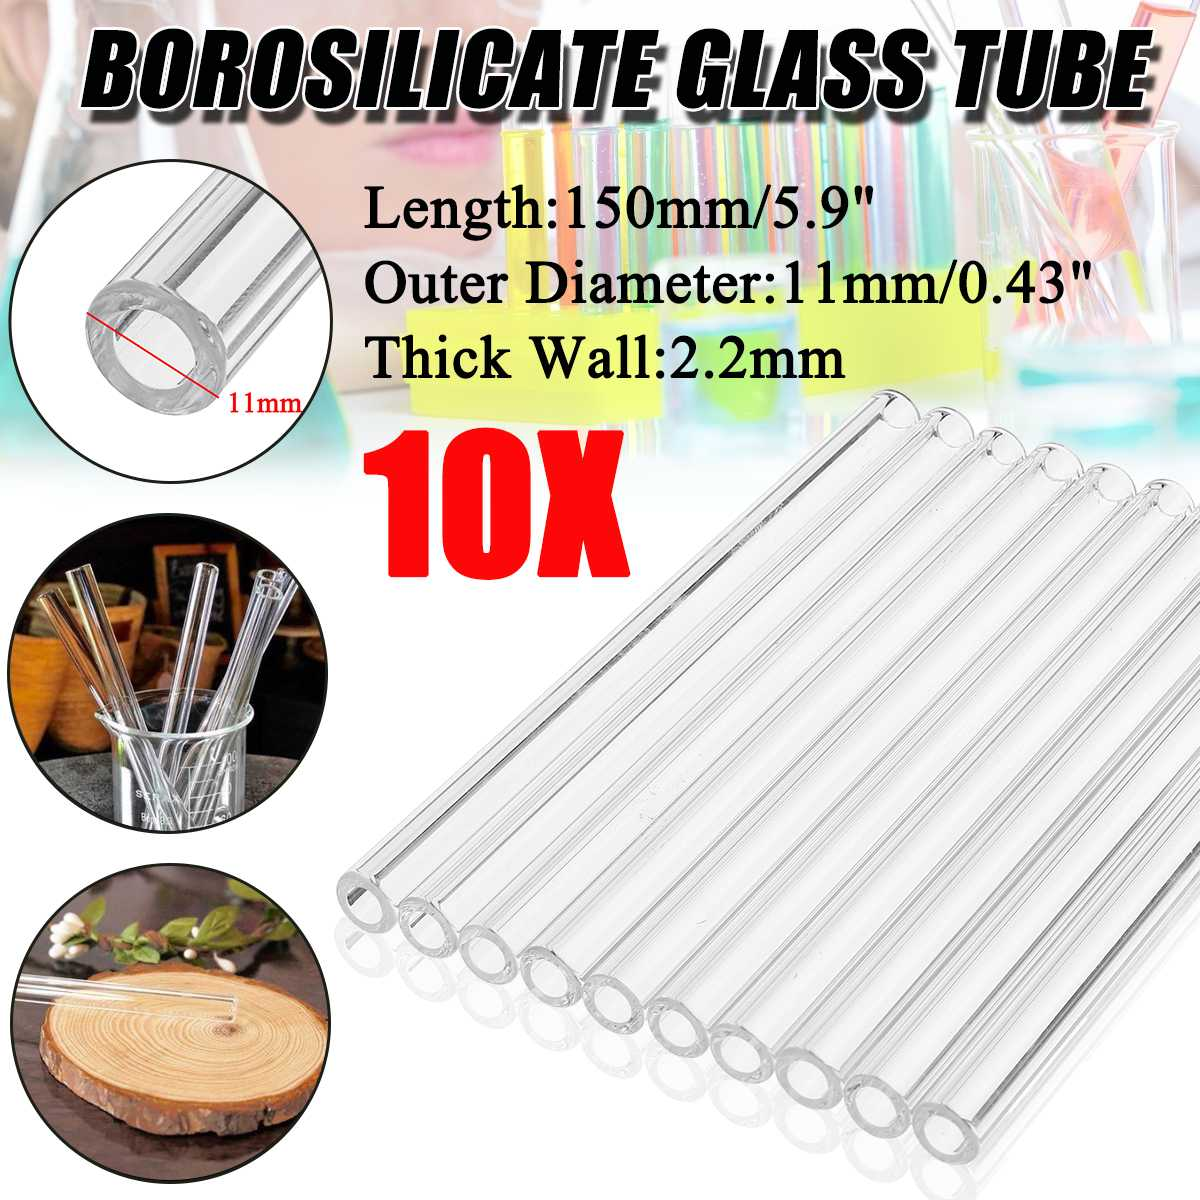 10Pcs 150mm OD 11mm 2.2mm Thick Wall Borosilicate Glass Clear Blowing Test Tube High Resistant Stirrer for School Chemistry Lab10Pcs 150mm OD 11mm 2.2mm Thick Wall Borosilicate Glass Clear Blowing Test Tube High Resistant Stirrer for School Chemistry Lab